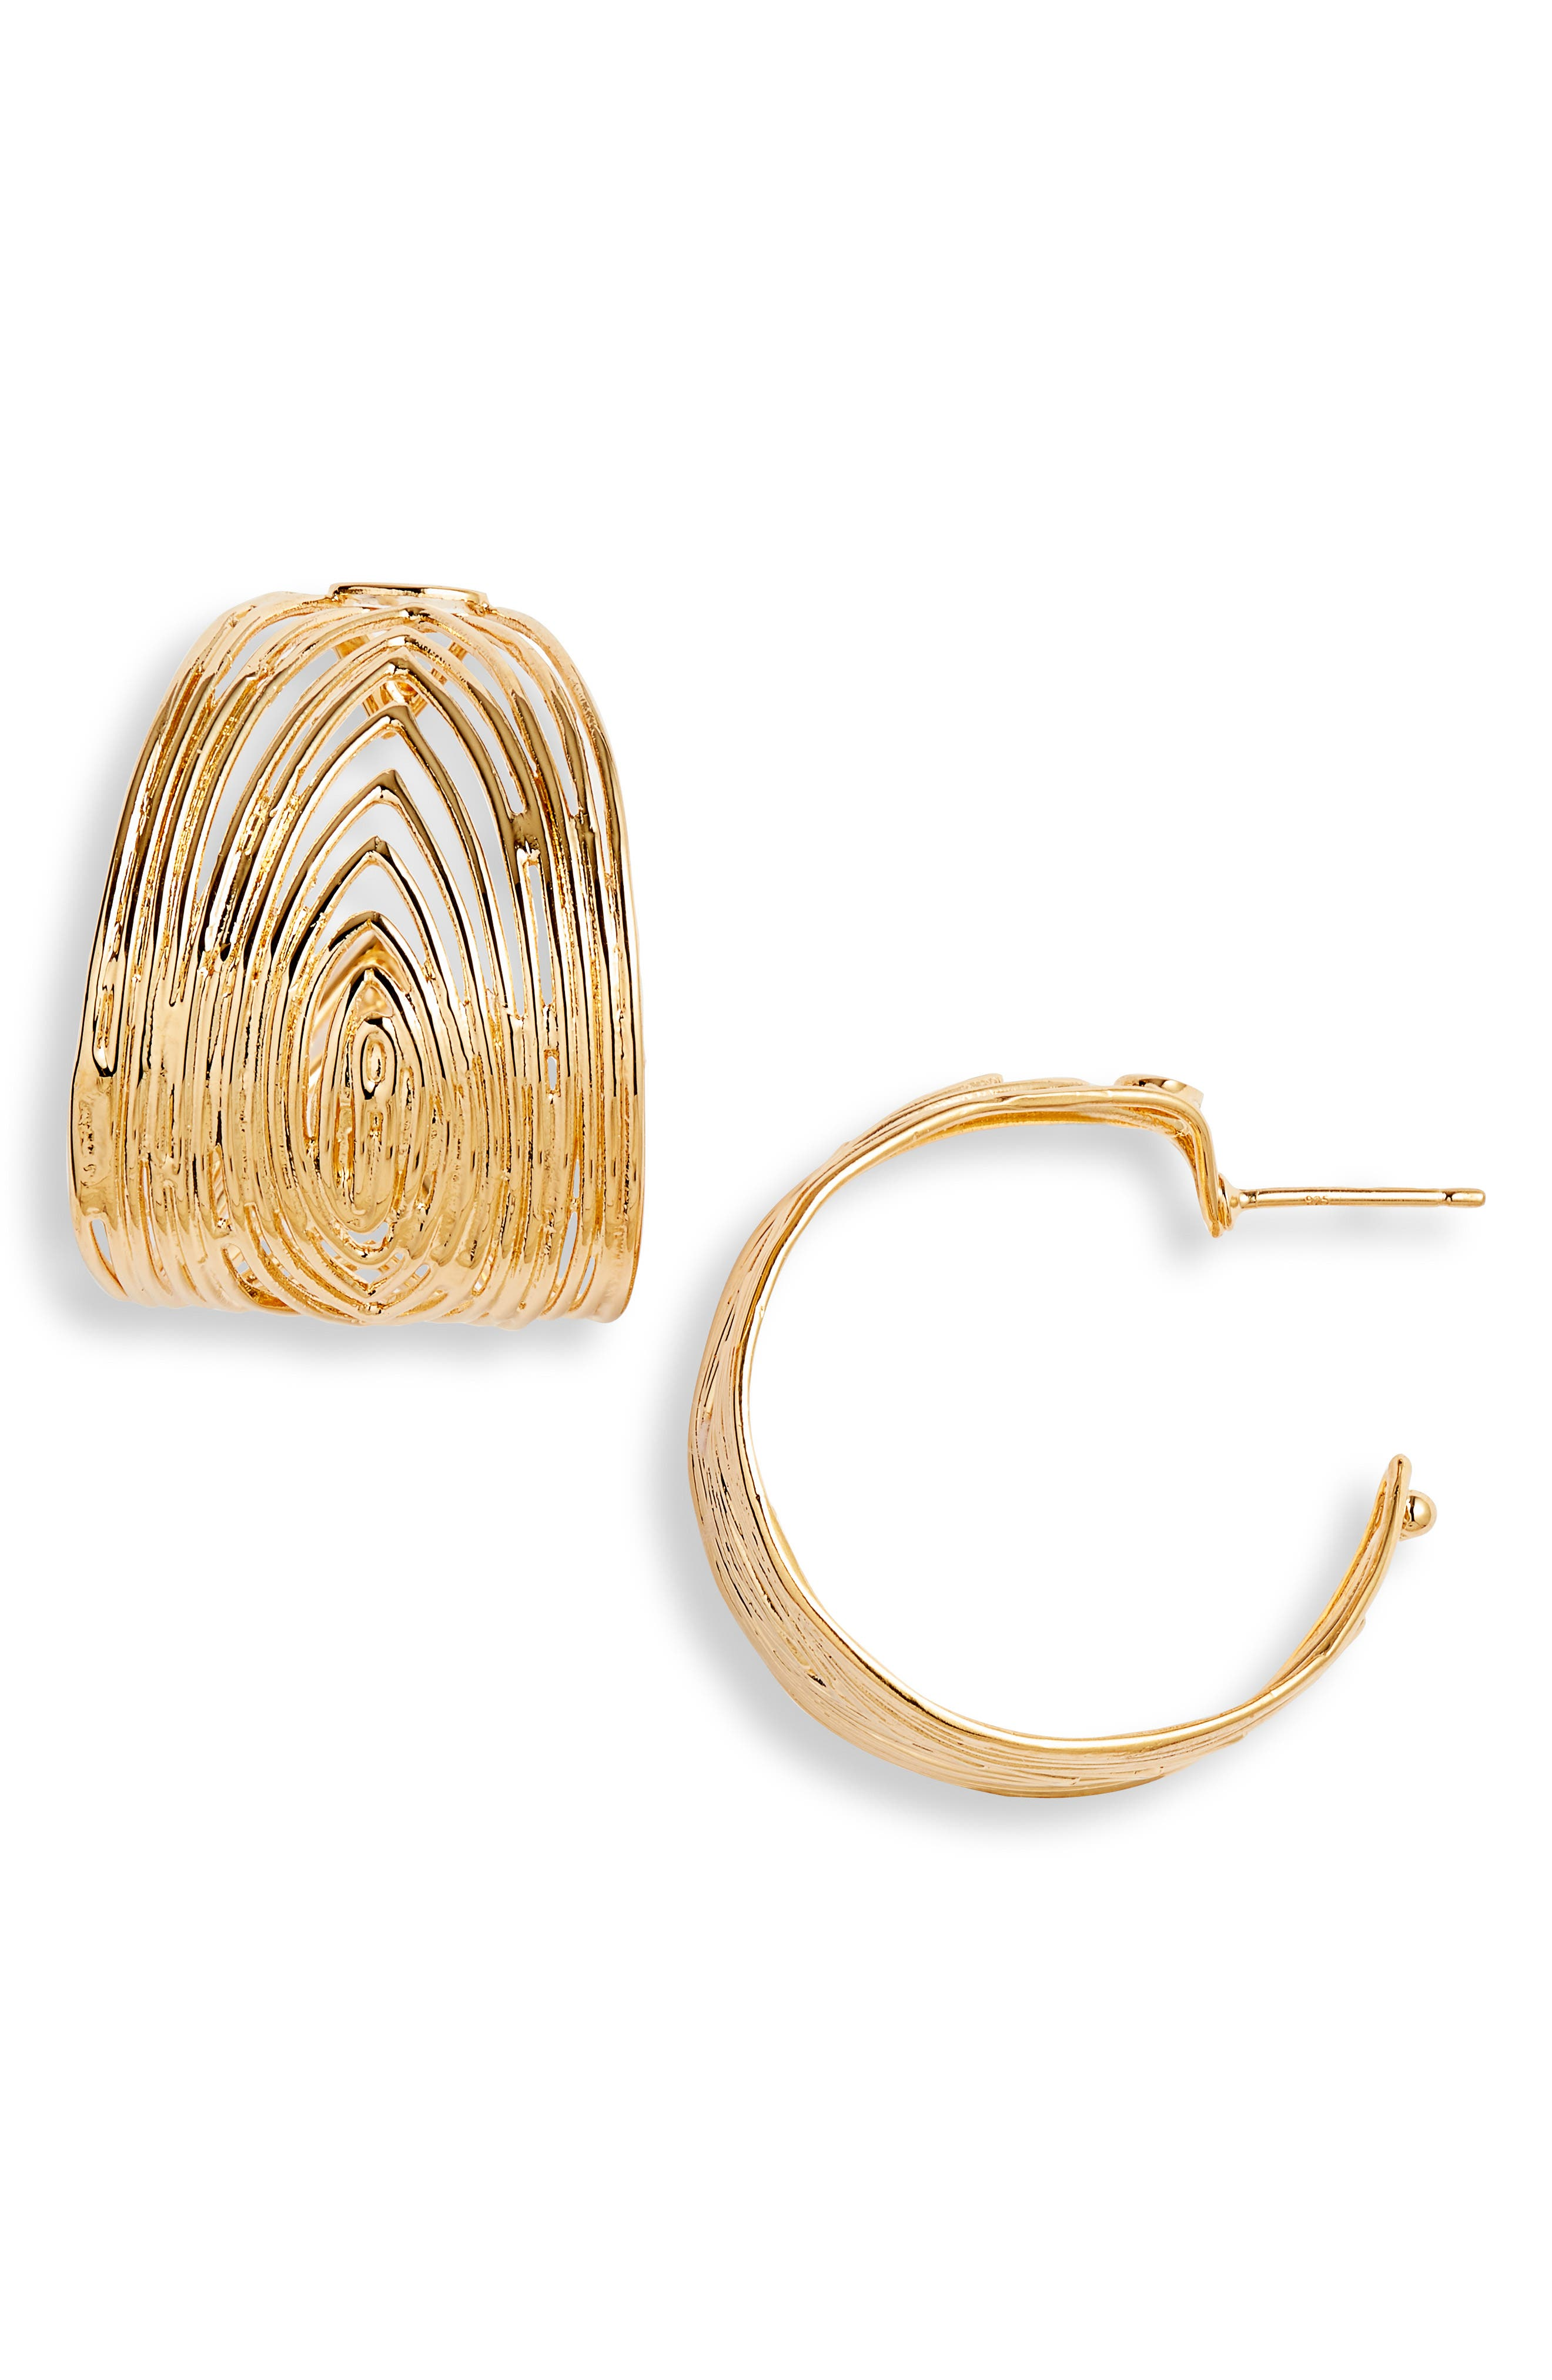 Wave Hoop Earrings,                             Main thumbnail 1, color,                             YELLOW GOLD